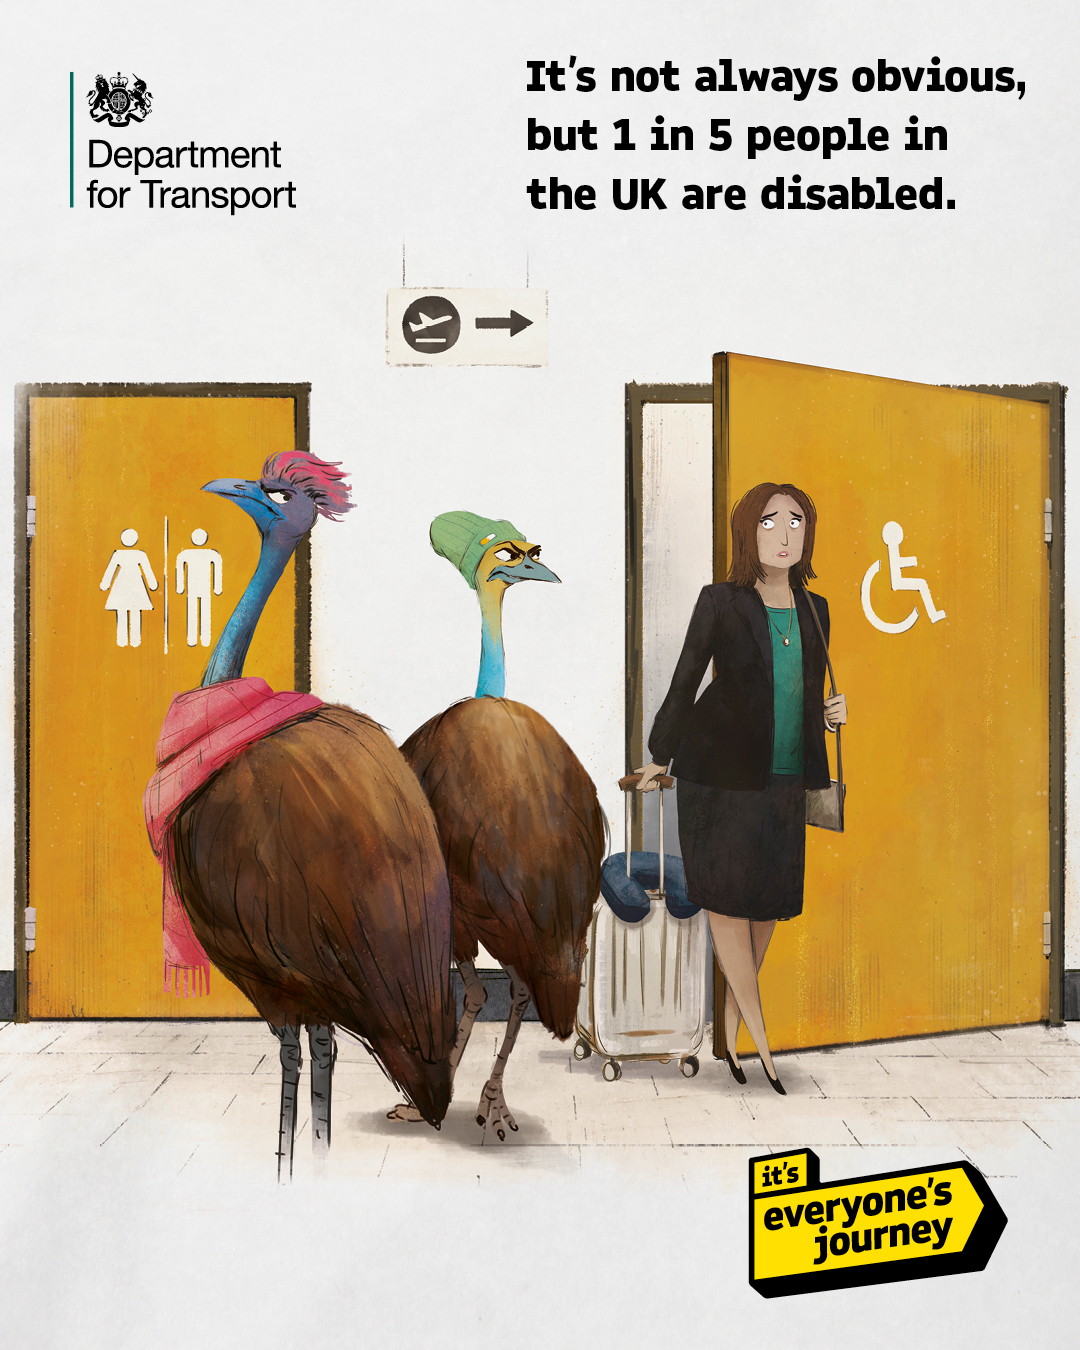 'it's everyone's journey' – making transport more inclusive